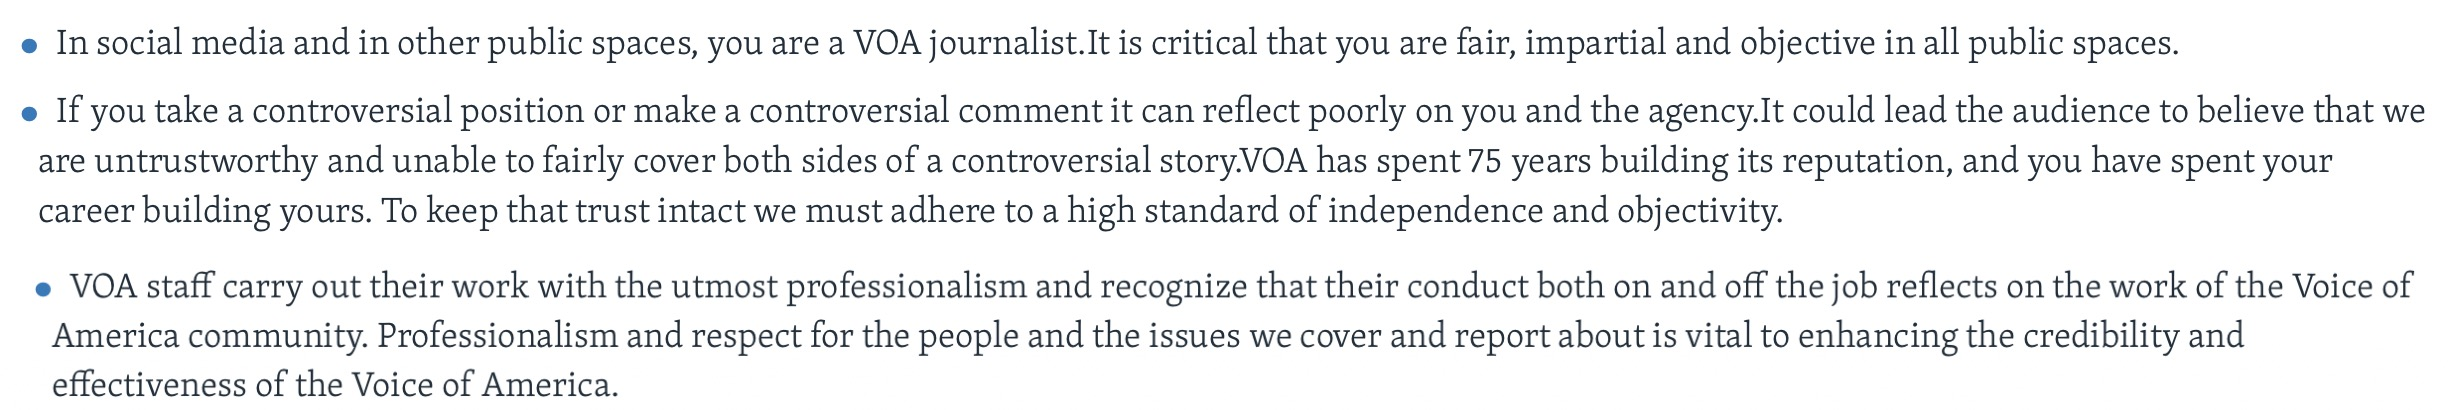 Part of VOA's policy, as shown on the VOA website. (Screenshot, Voice of America)